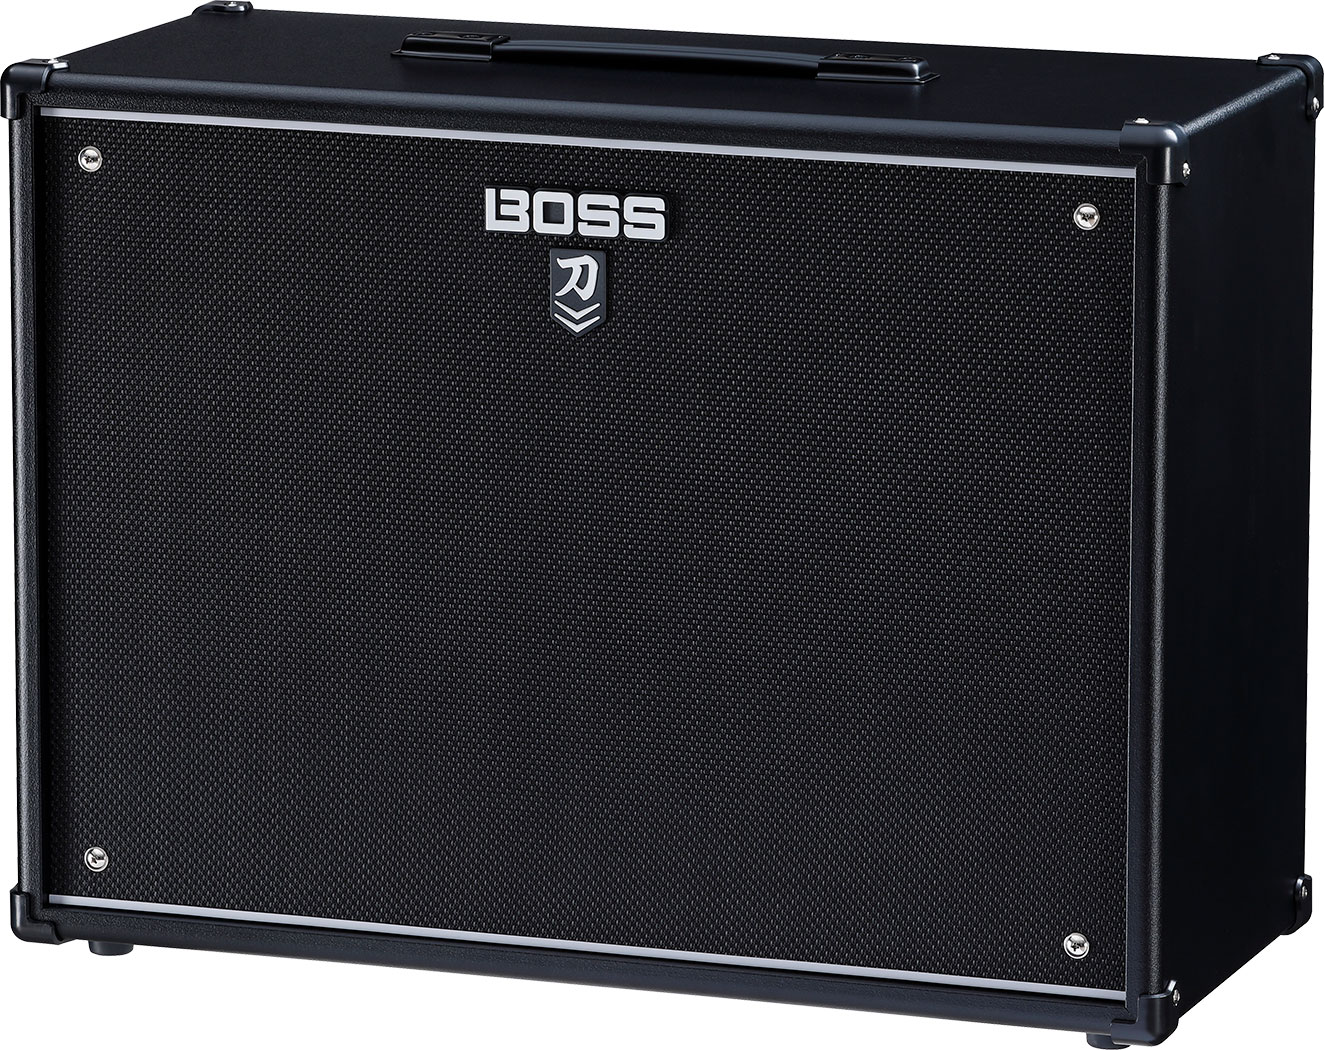 Boss Katana Cabinet212 Guitar Amplifier Cabinet Wiring On A 4 X 12 Speaker 1 Inch Phone Type Accessories Owners Manual Size And Weight Width 670 Mm 26 7 16 Inches Depth 300 11 13 Height 505